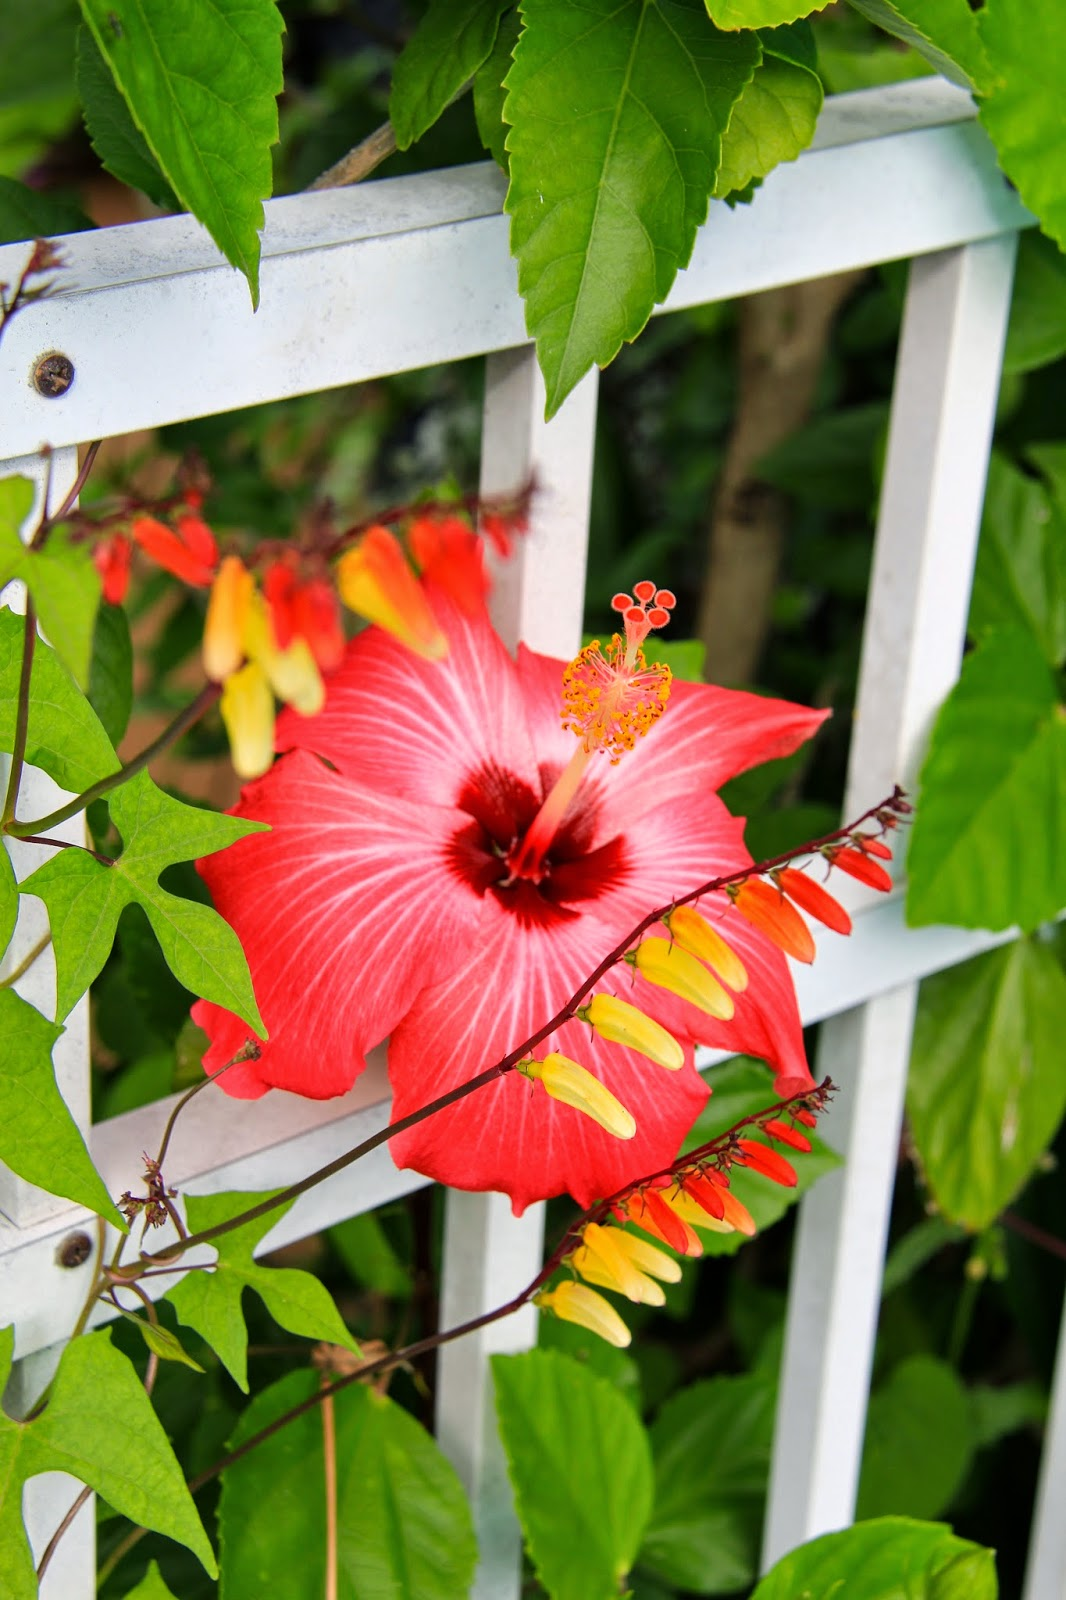 Tropical gardening in new york city early morning hibiscus blooms spanish flag bloom in the foreground and hibiscus bloom in the background izmirmasajfo